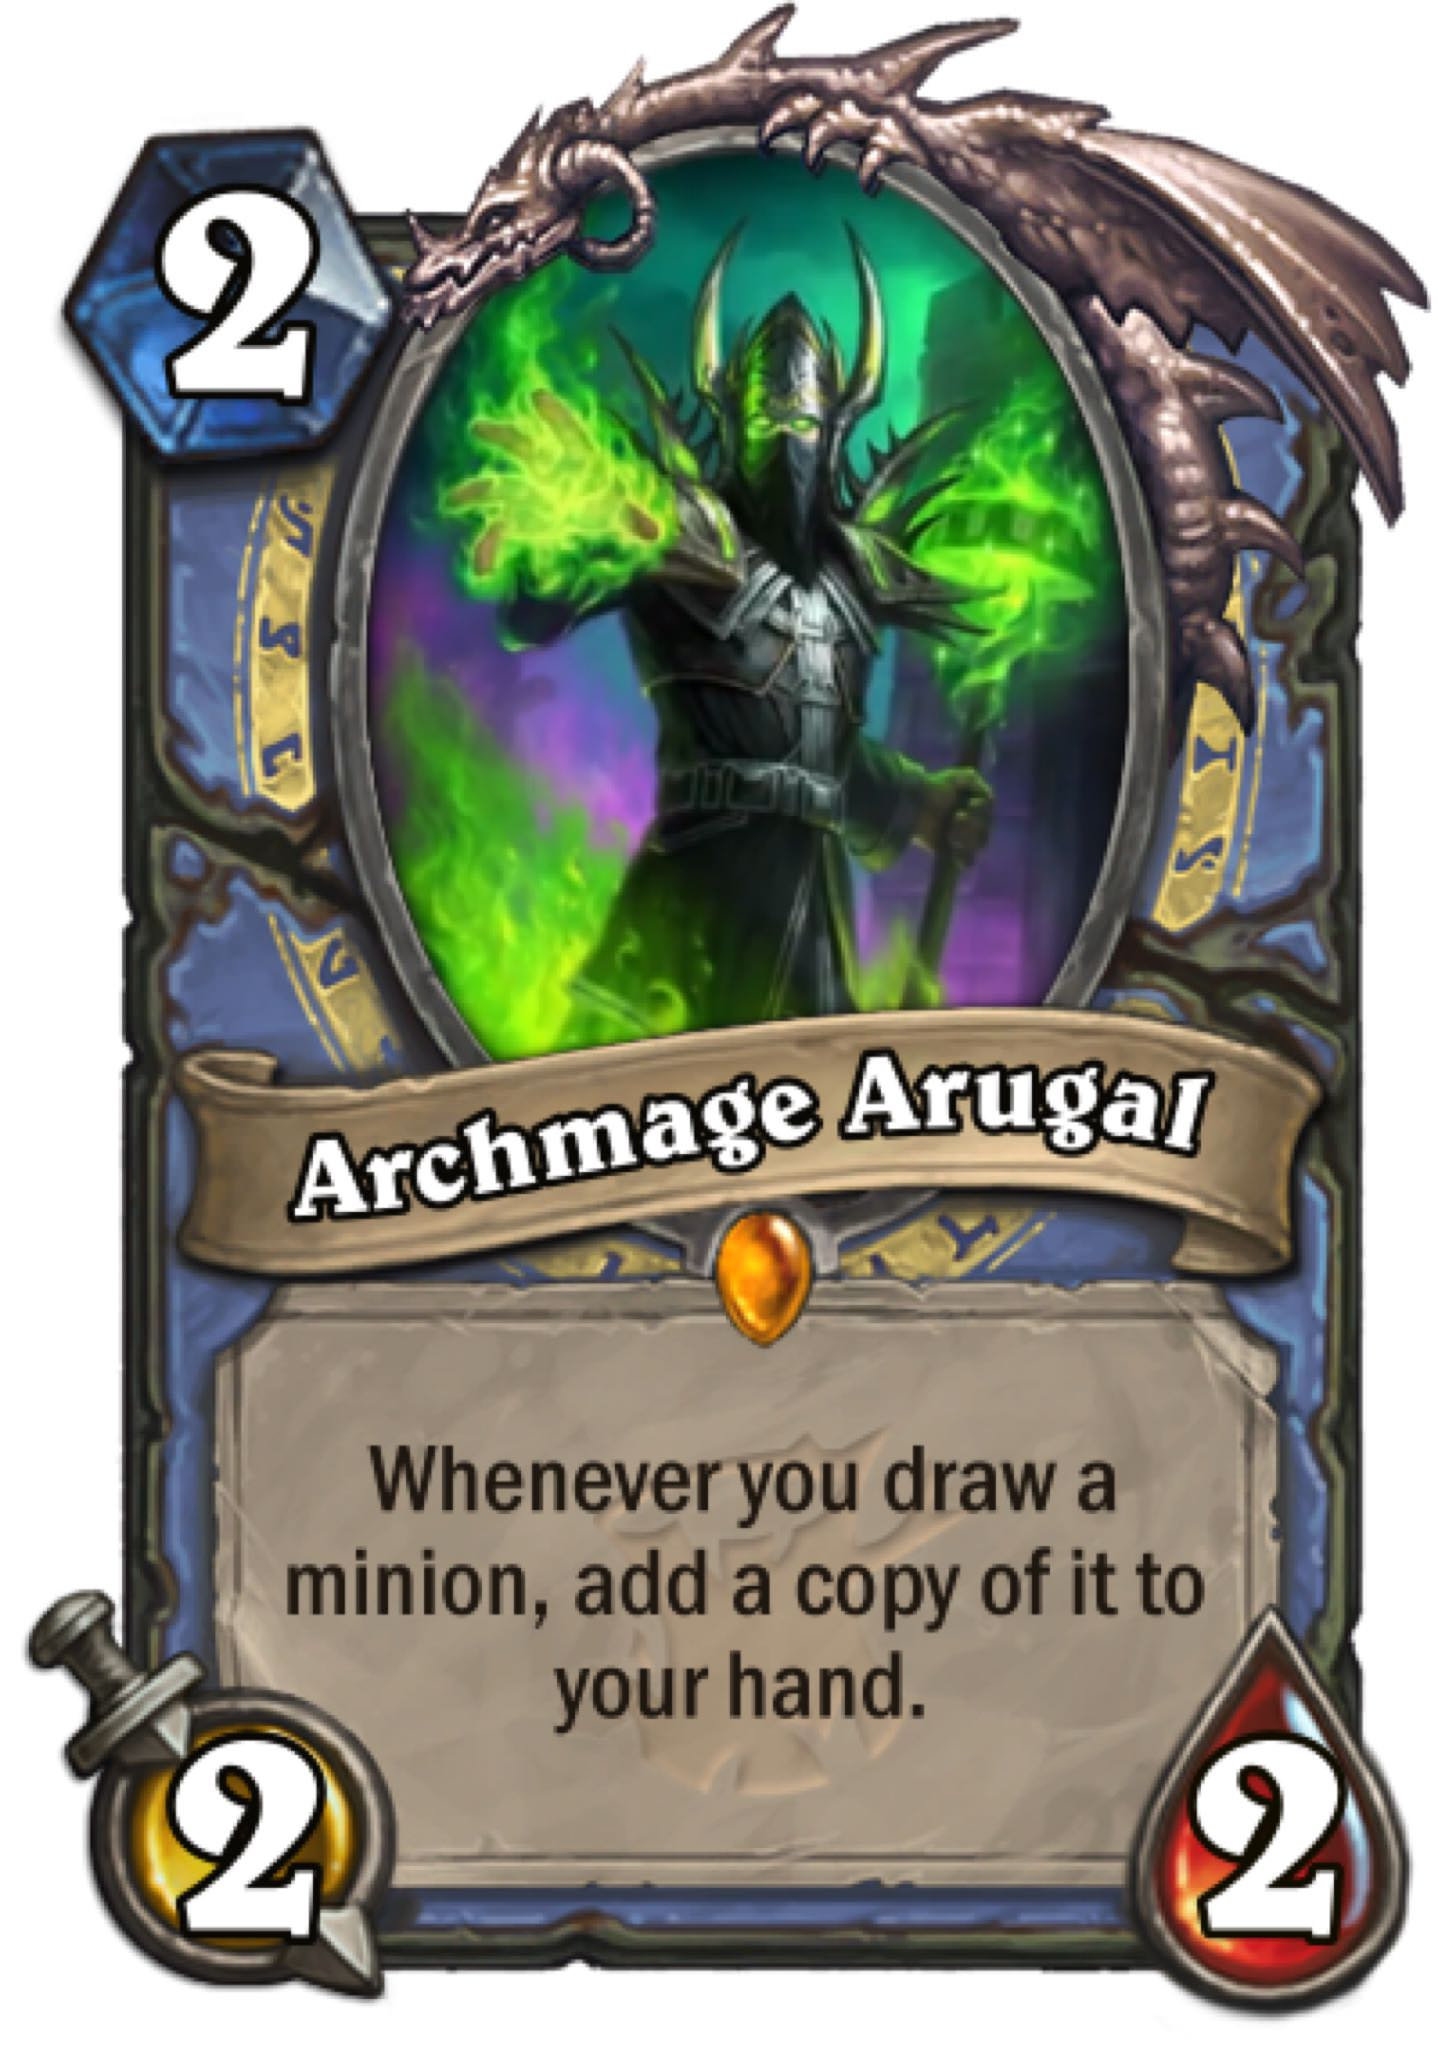 Hearthstone: The Witchwood: New Legendary Mage card revealed, Archmage Arugal